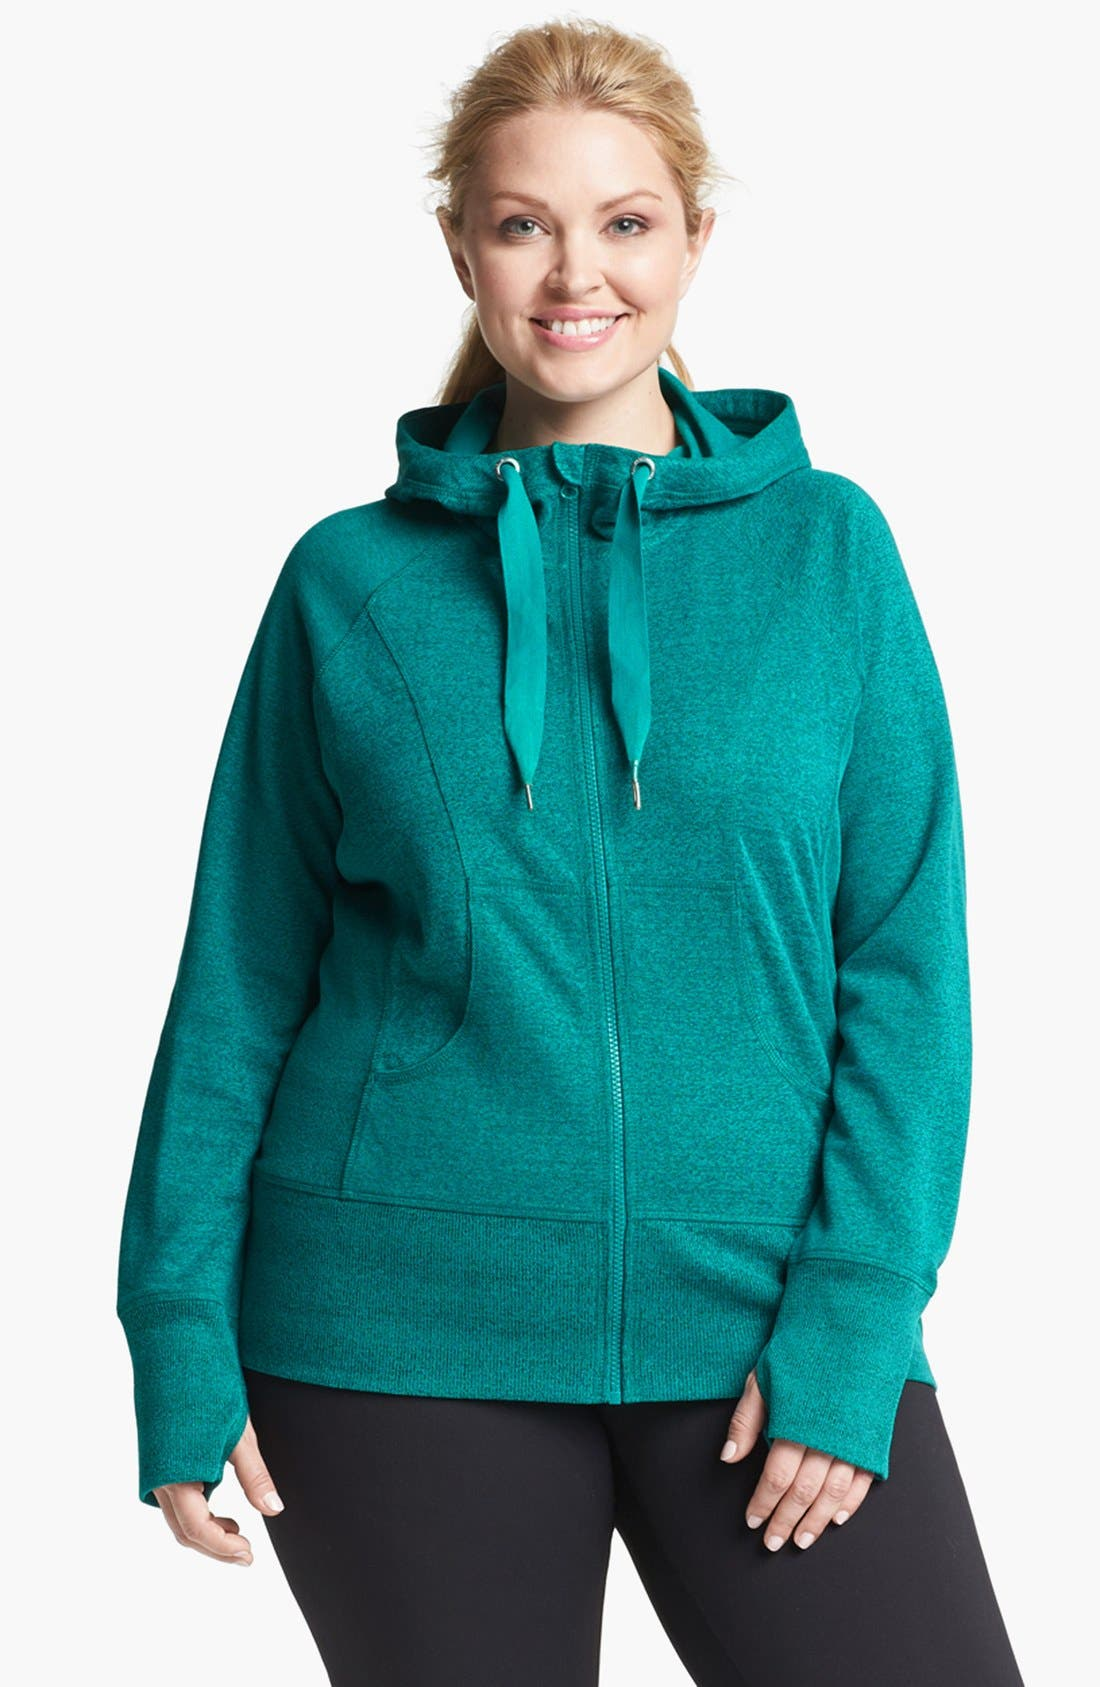 Alternate Image 1 Selected - Zella 'Item' Hoodie (Plus Size)